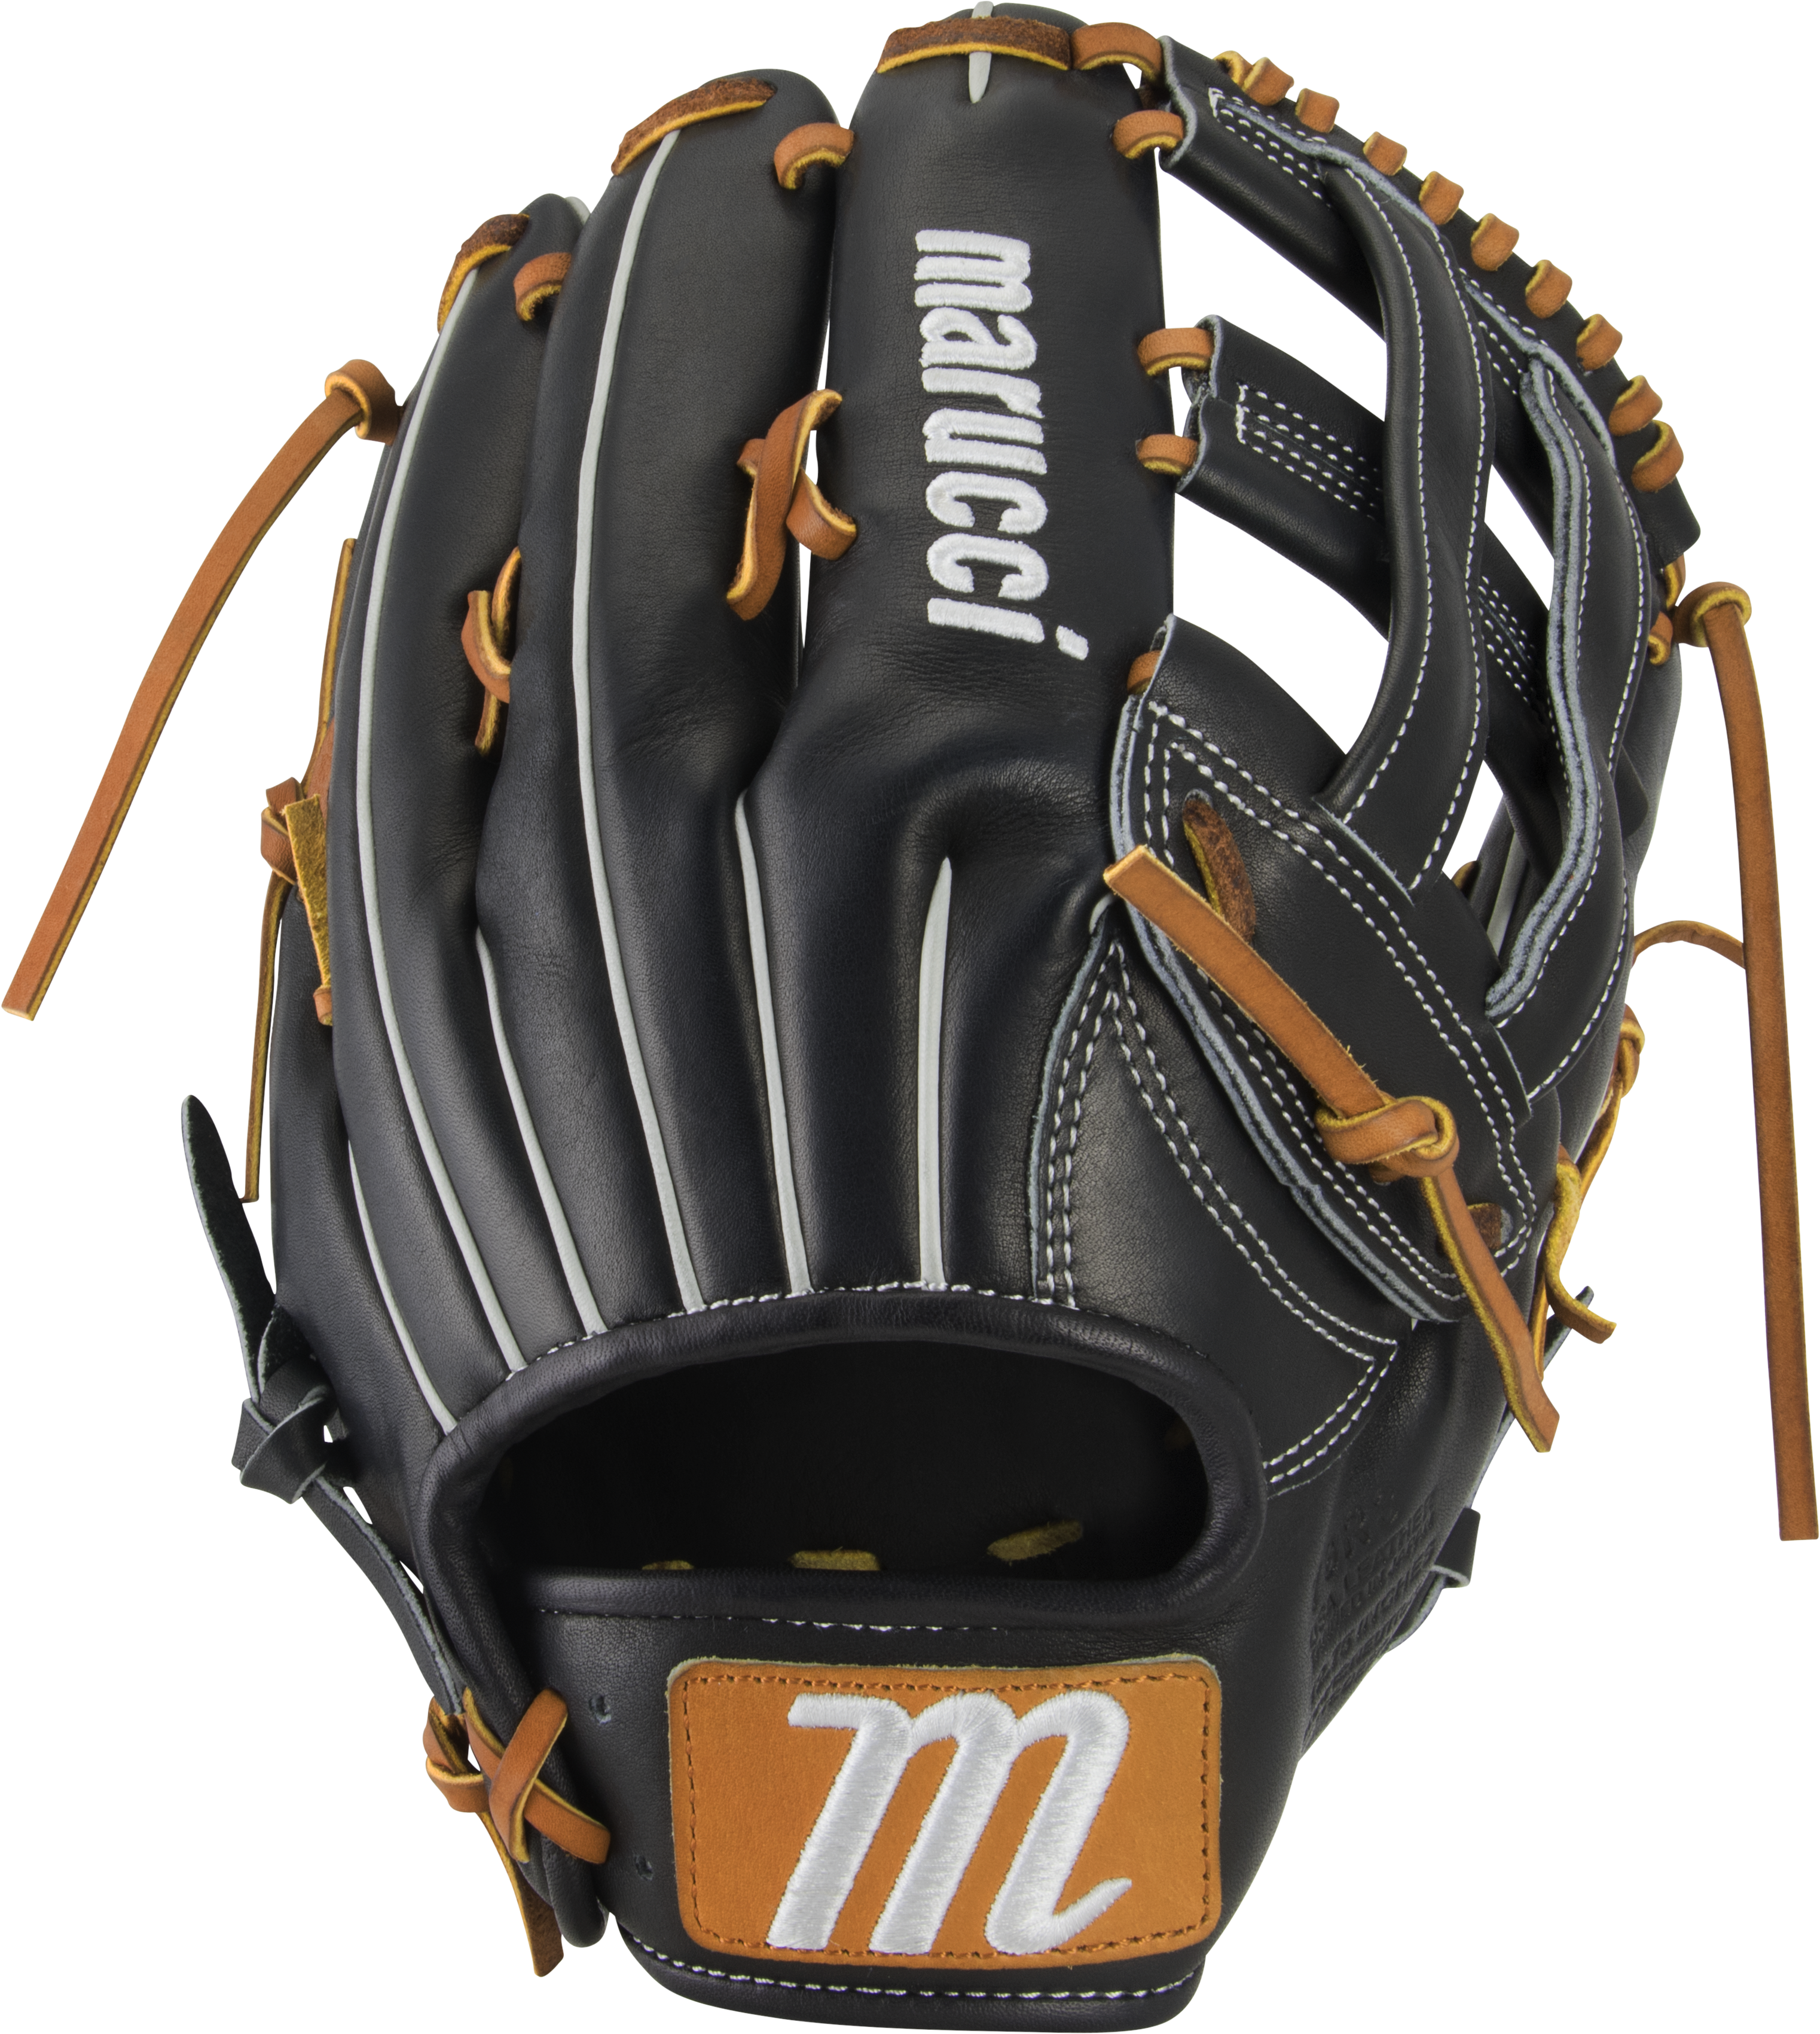 marucci-capitol-12-75-baseball-glove-78r3-h-web-right-hand-throw MFGCP78R3-BKTF-RightHandThrow Marucci  849817099285 Premium Japanese-tanned USA Kip leather combines ideal stiffness with lightweight feel